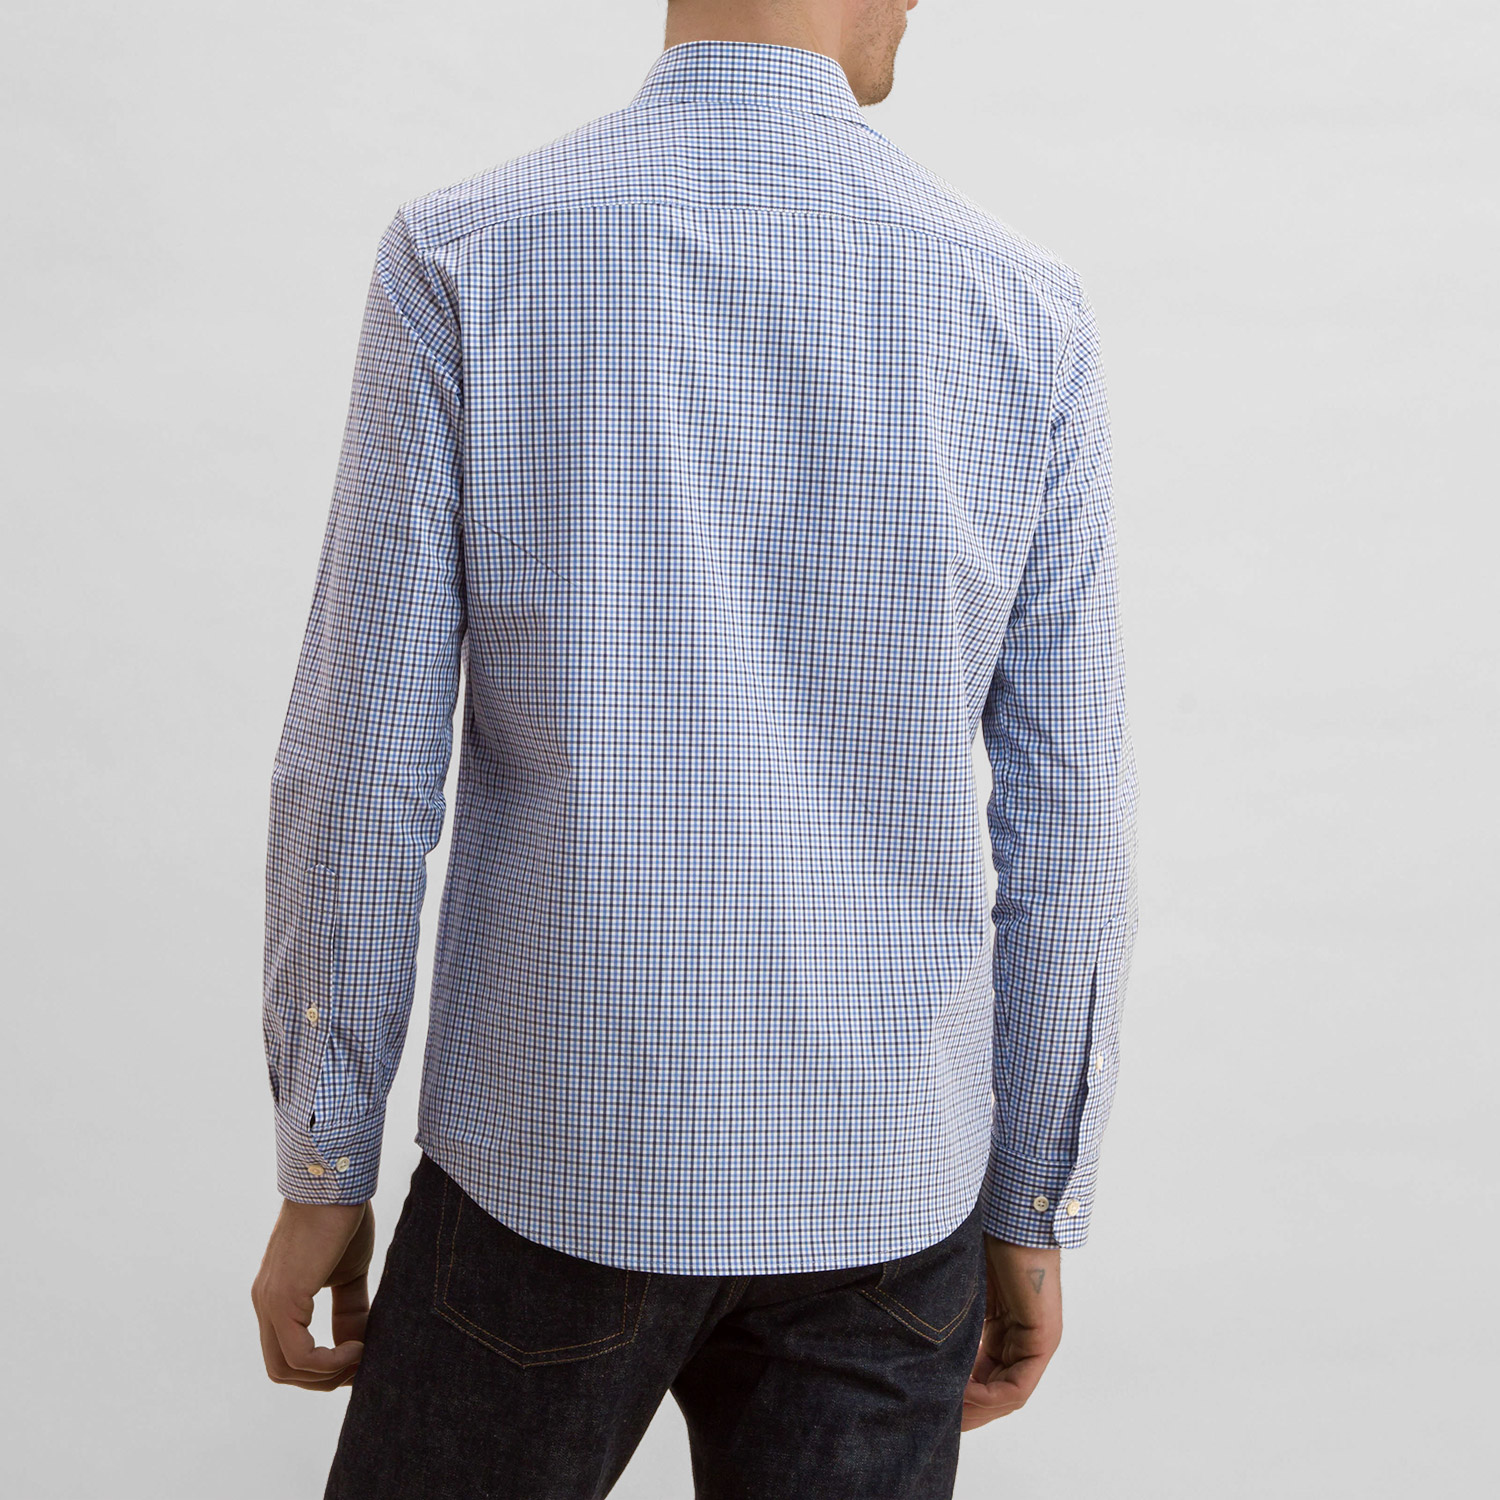 Men's Casual Office Shirt